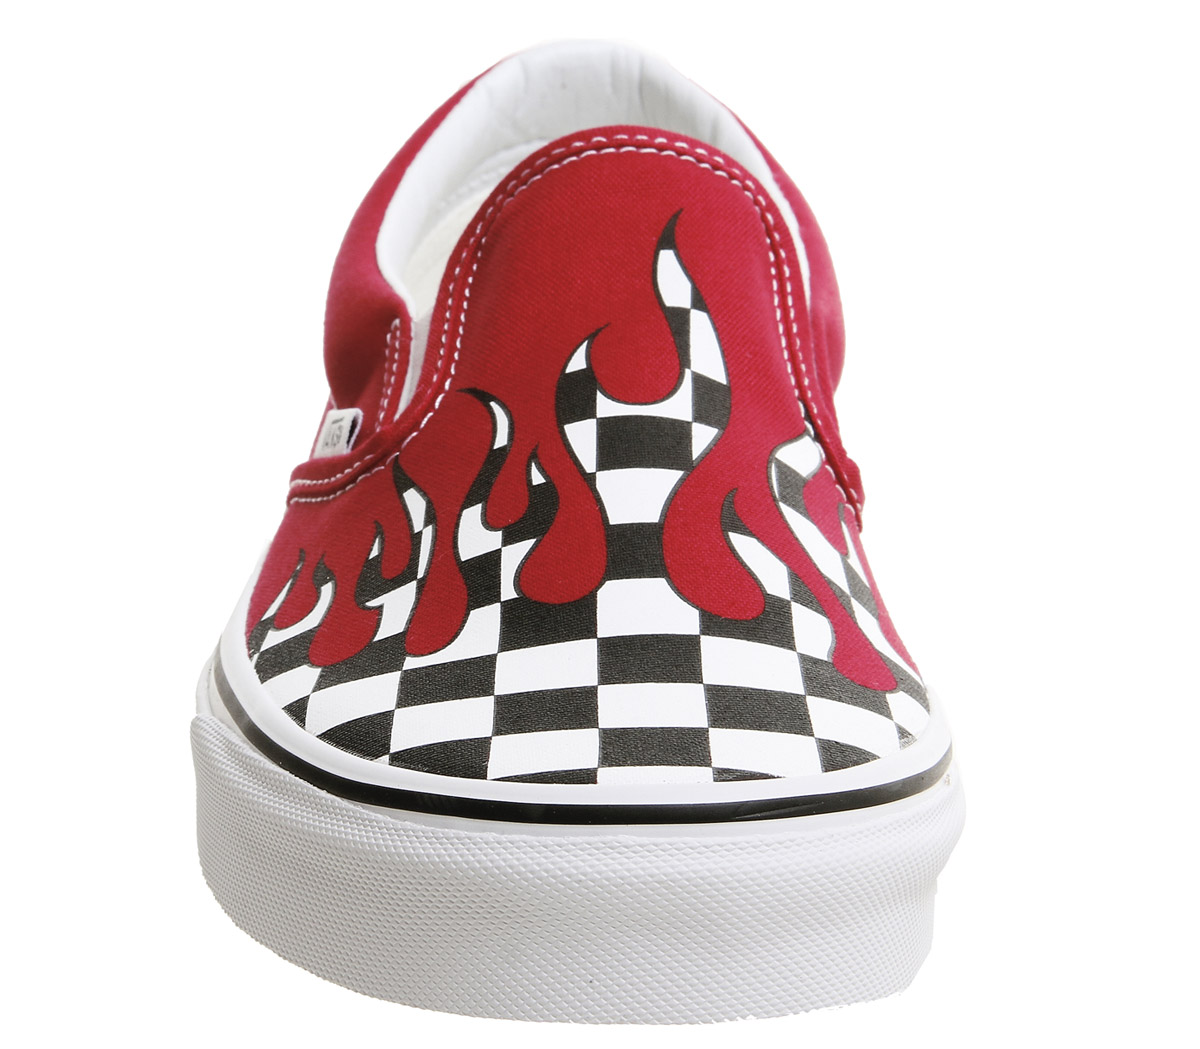 630ea53dc9 Mens Vans Vans Classic Slip On Trainers Racing Red Checkerboard ...